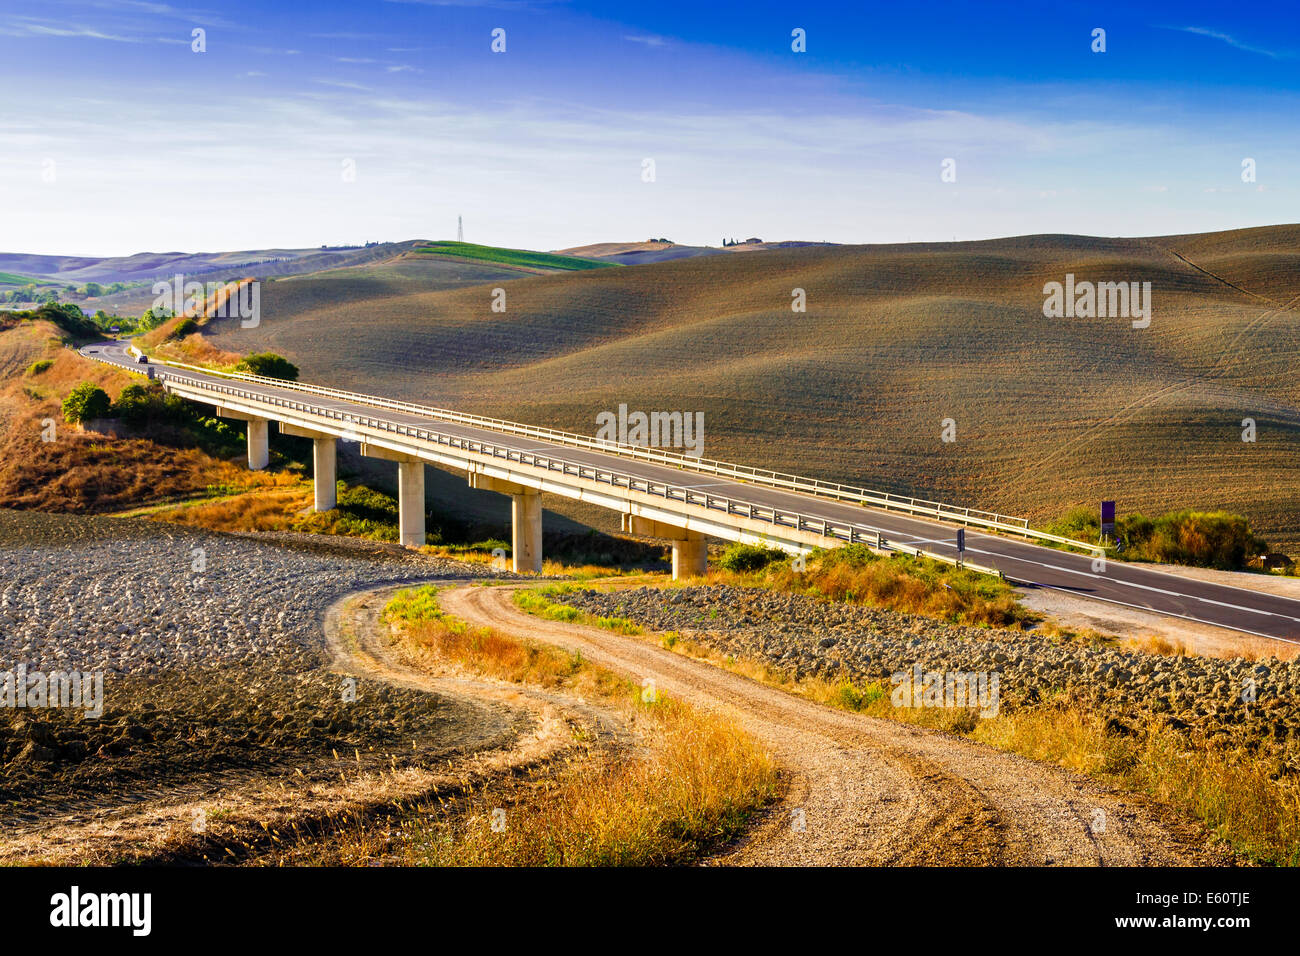 Bridge and hills in a summer day in Crete Senesi in Tuscany, Italy - Stock Image